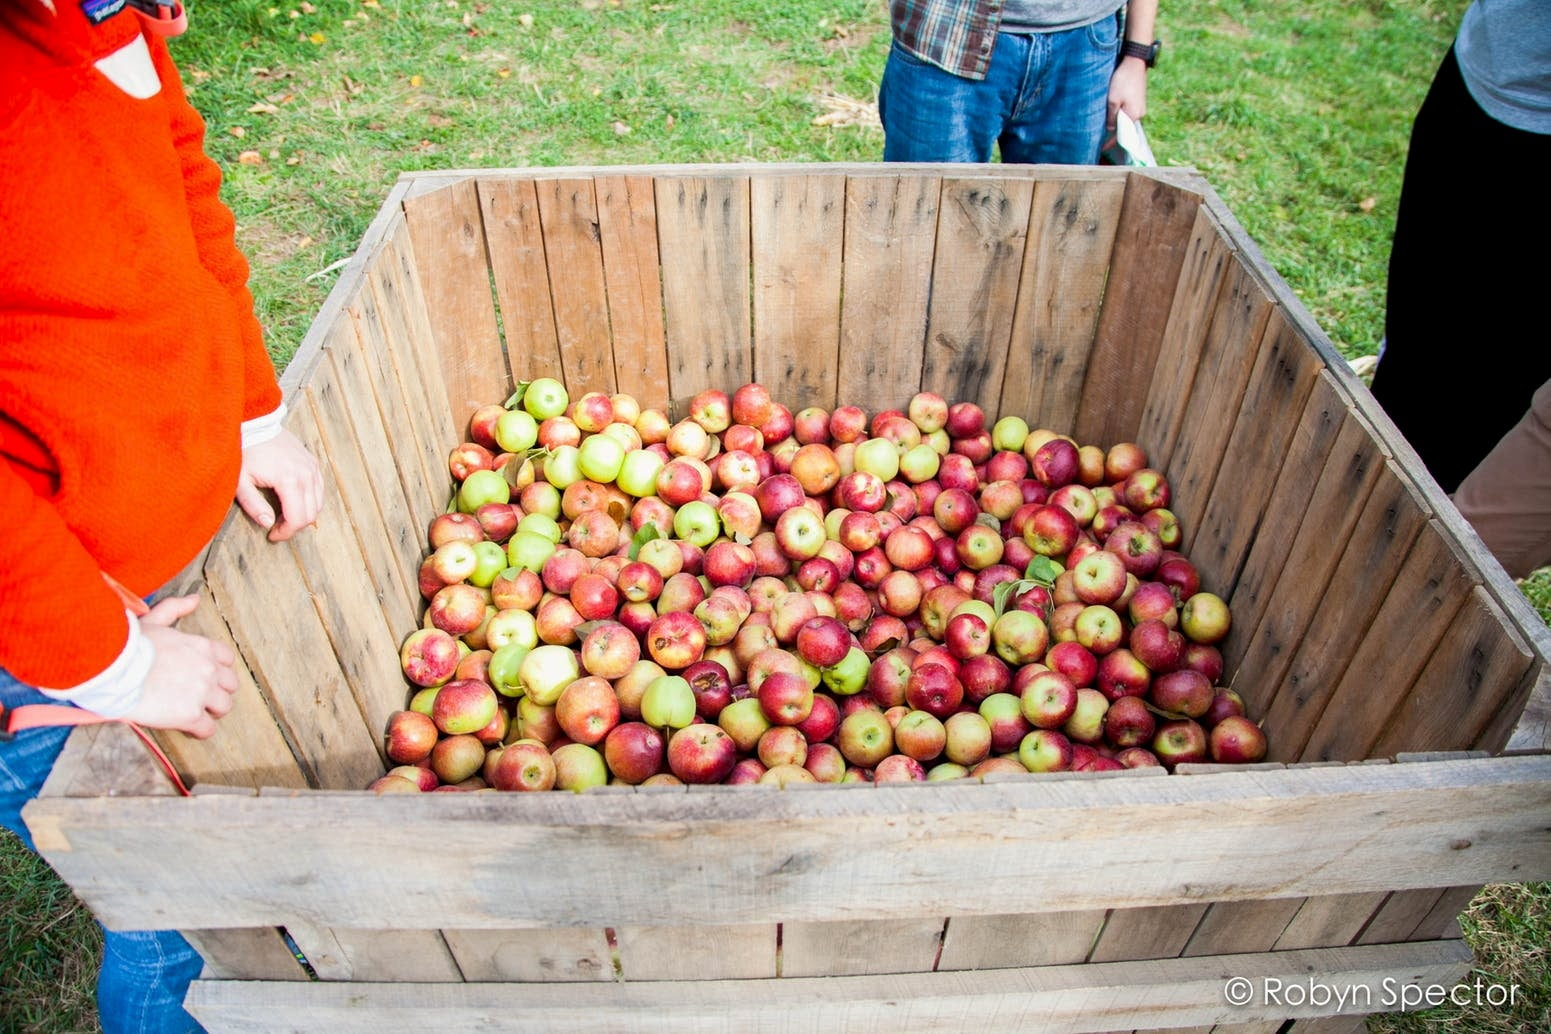 People standing around large wooden box of apples.